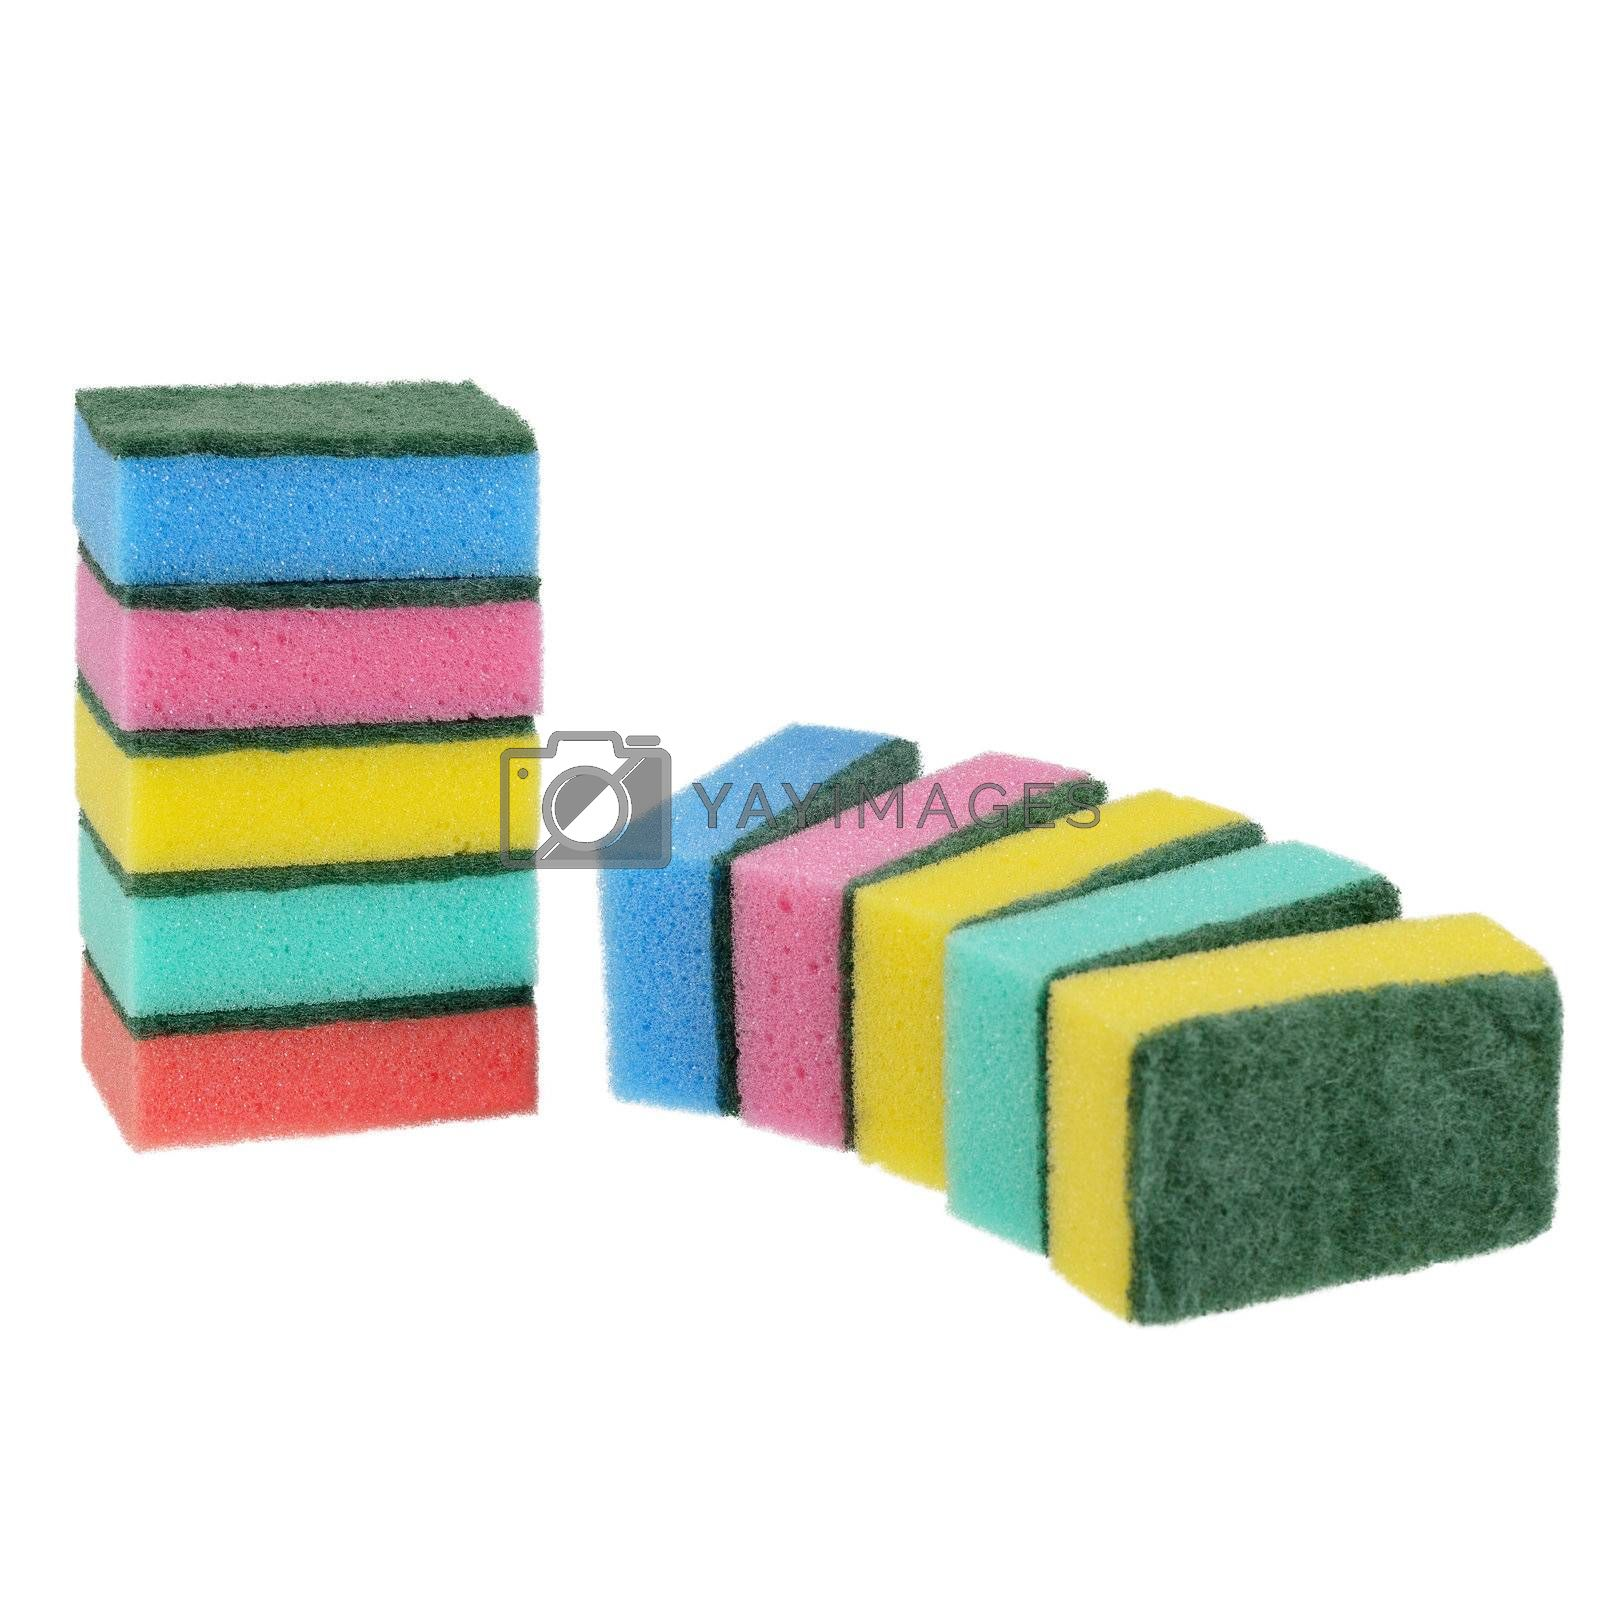 Set of kitchen sponges in different colors. Isolated on white background